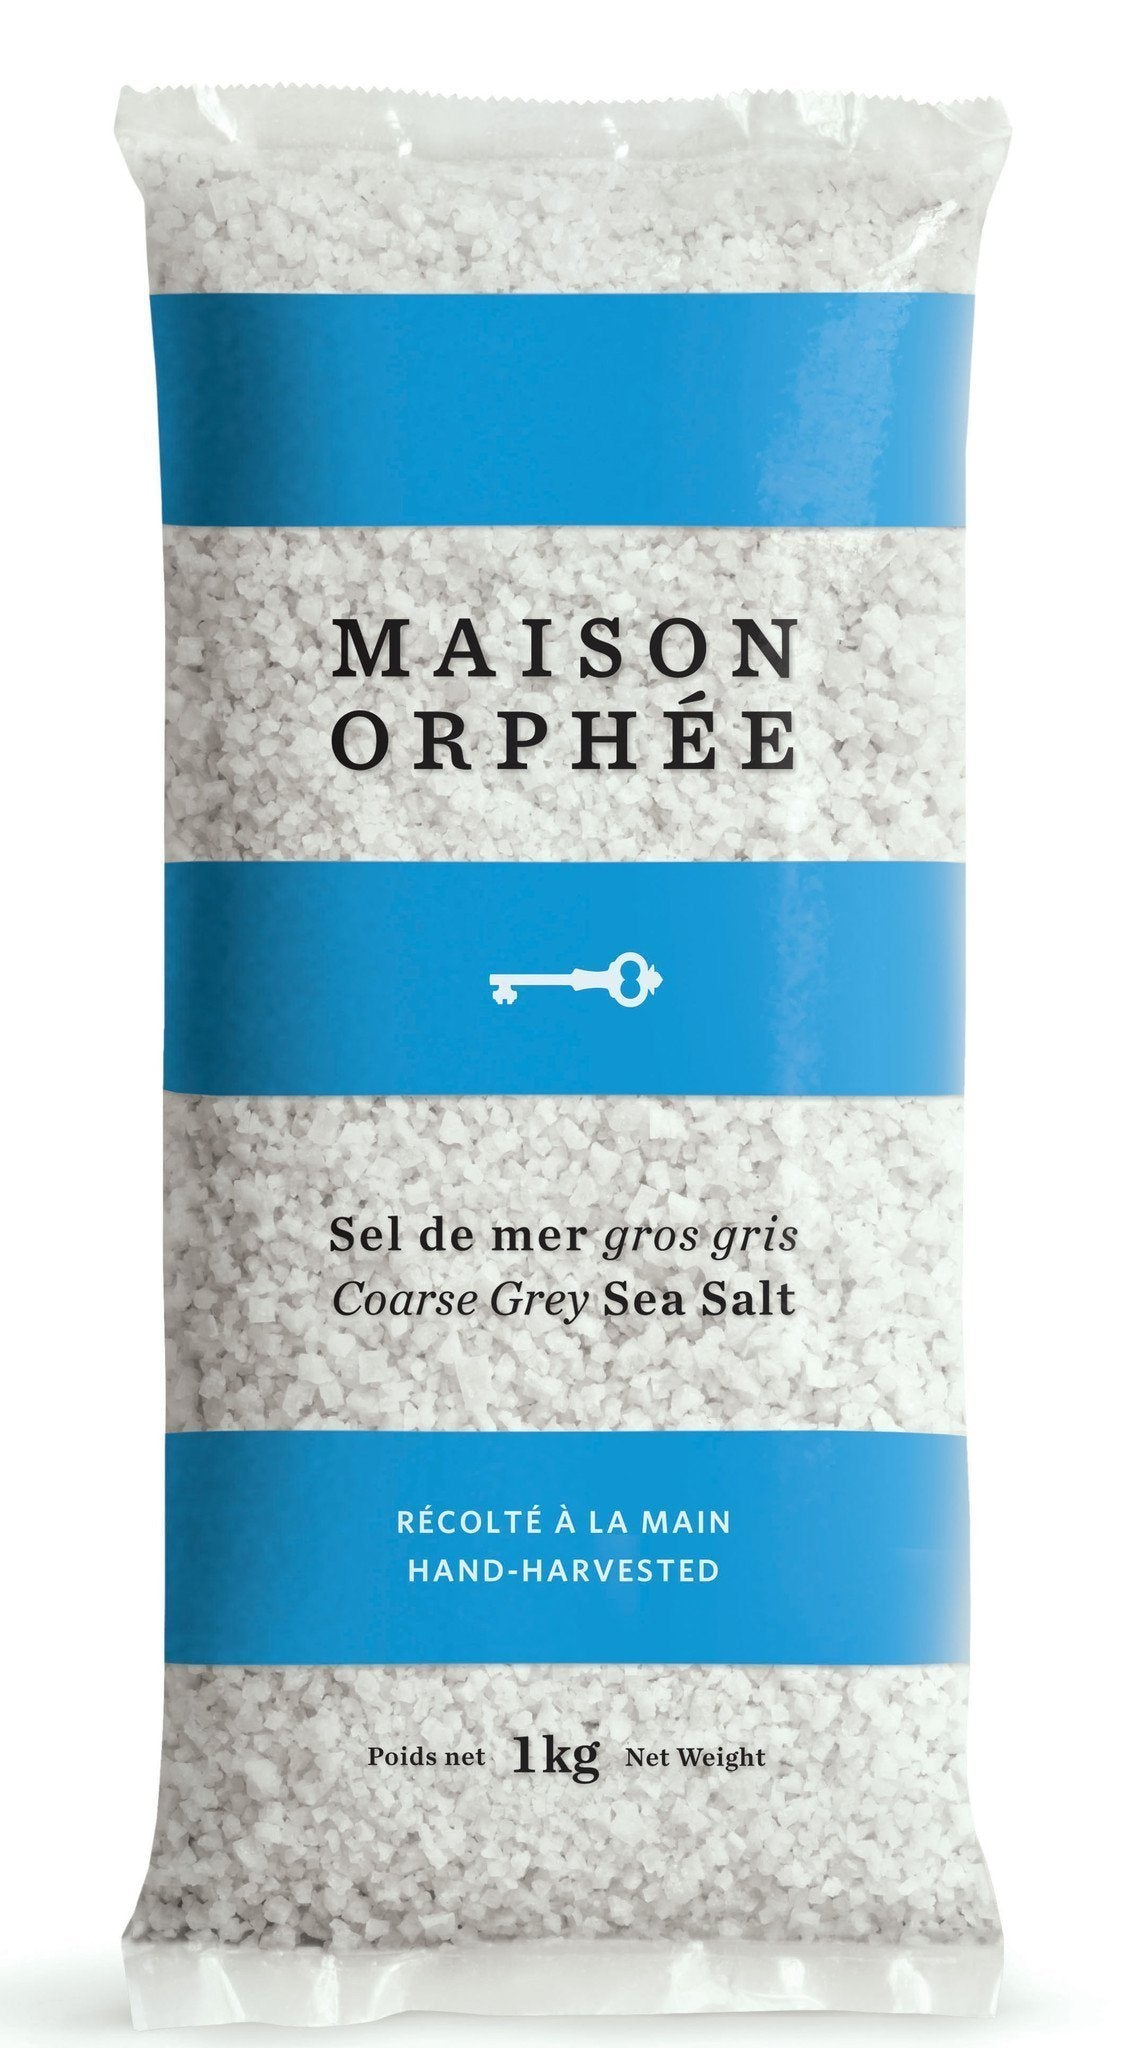 Food & Drink - Maison Orphee - Coarse Grey Sea Salt, 1kg